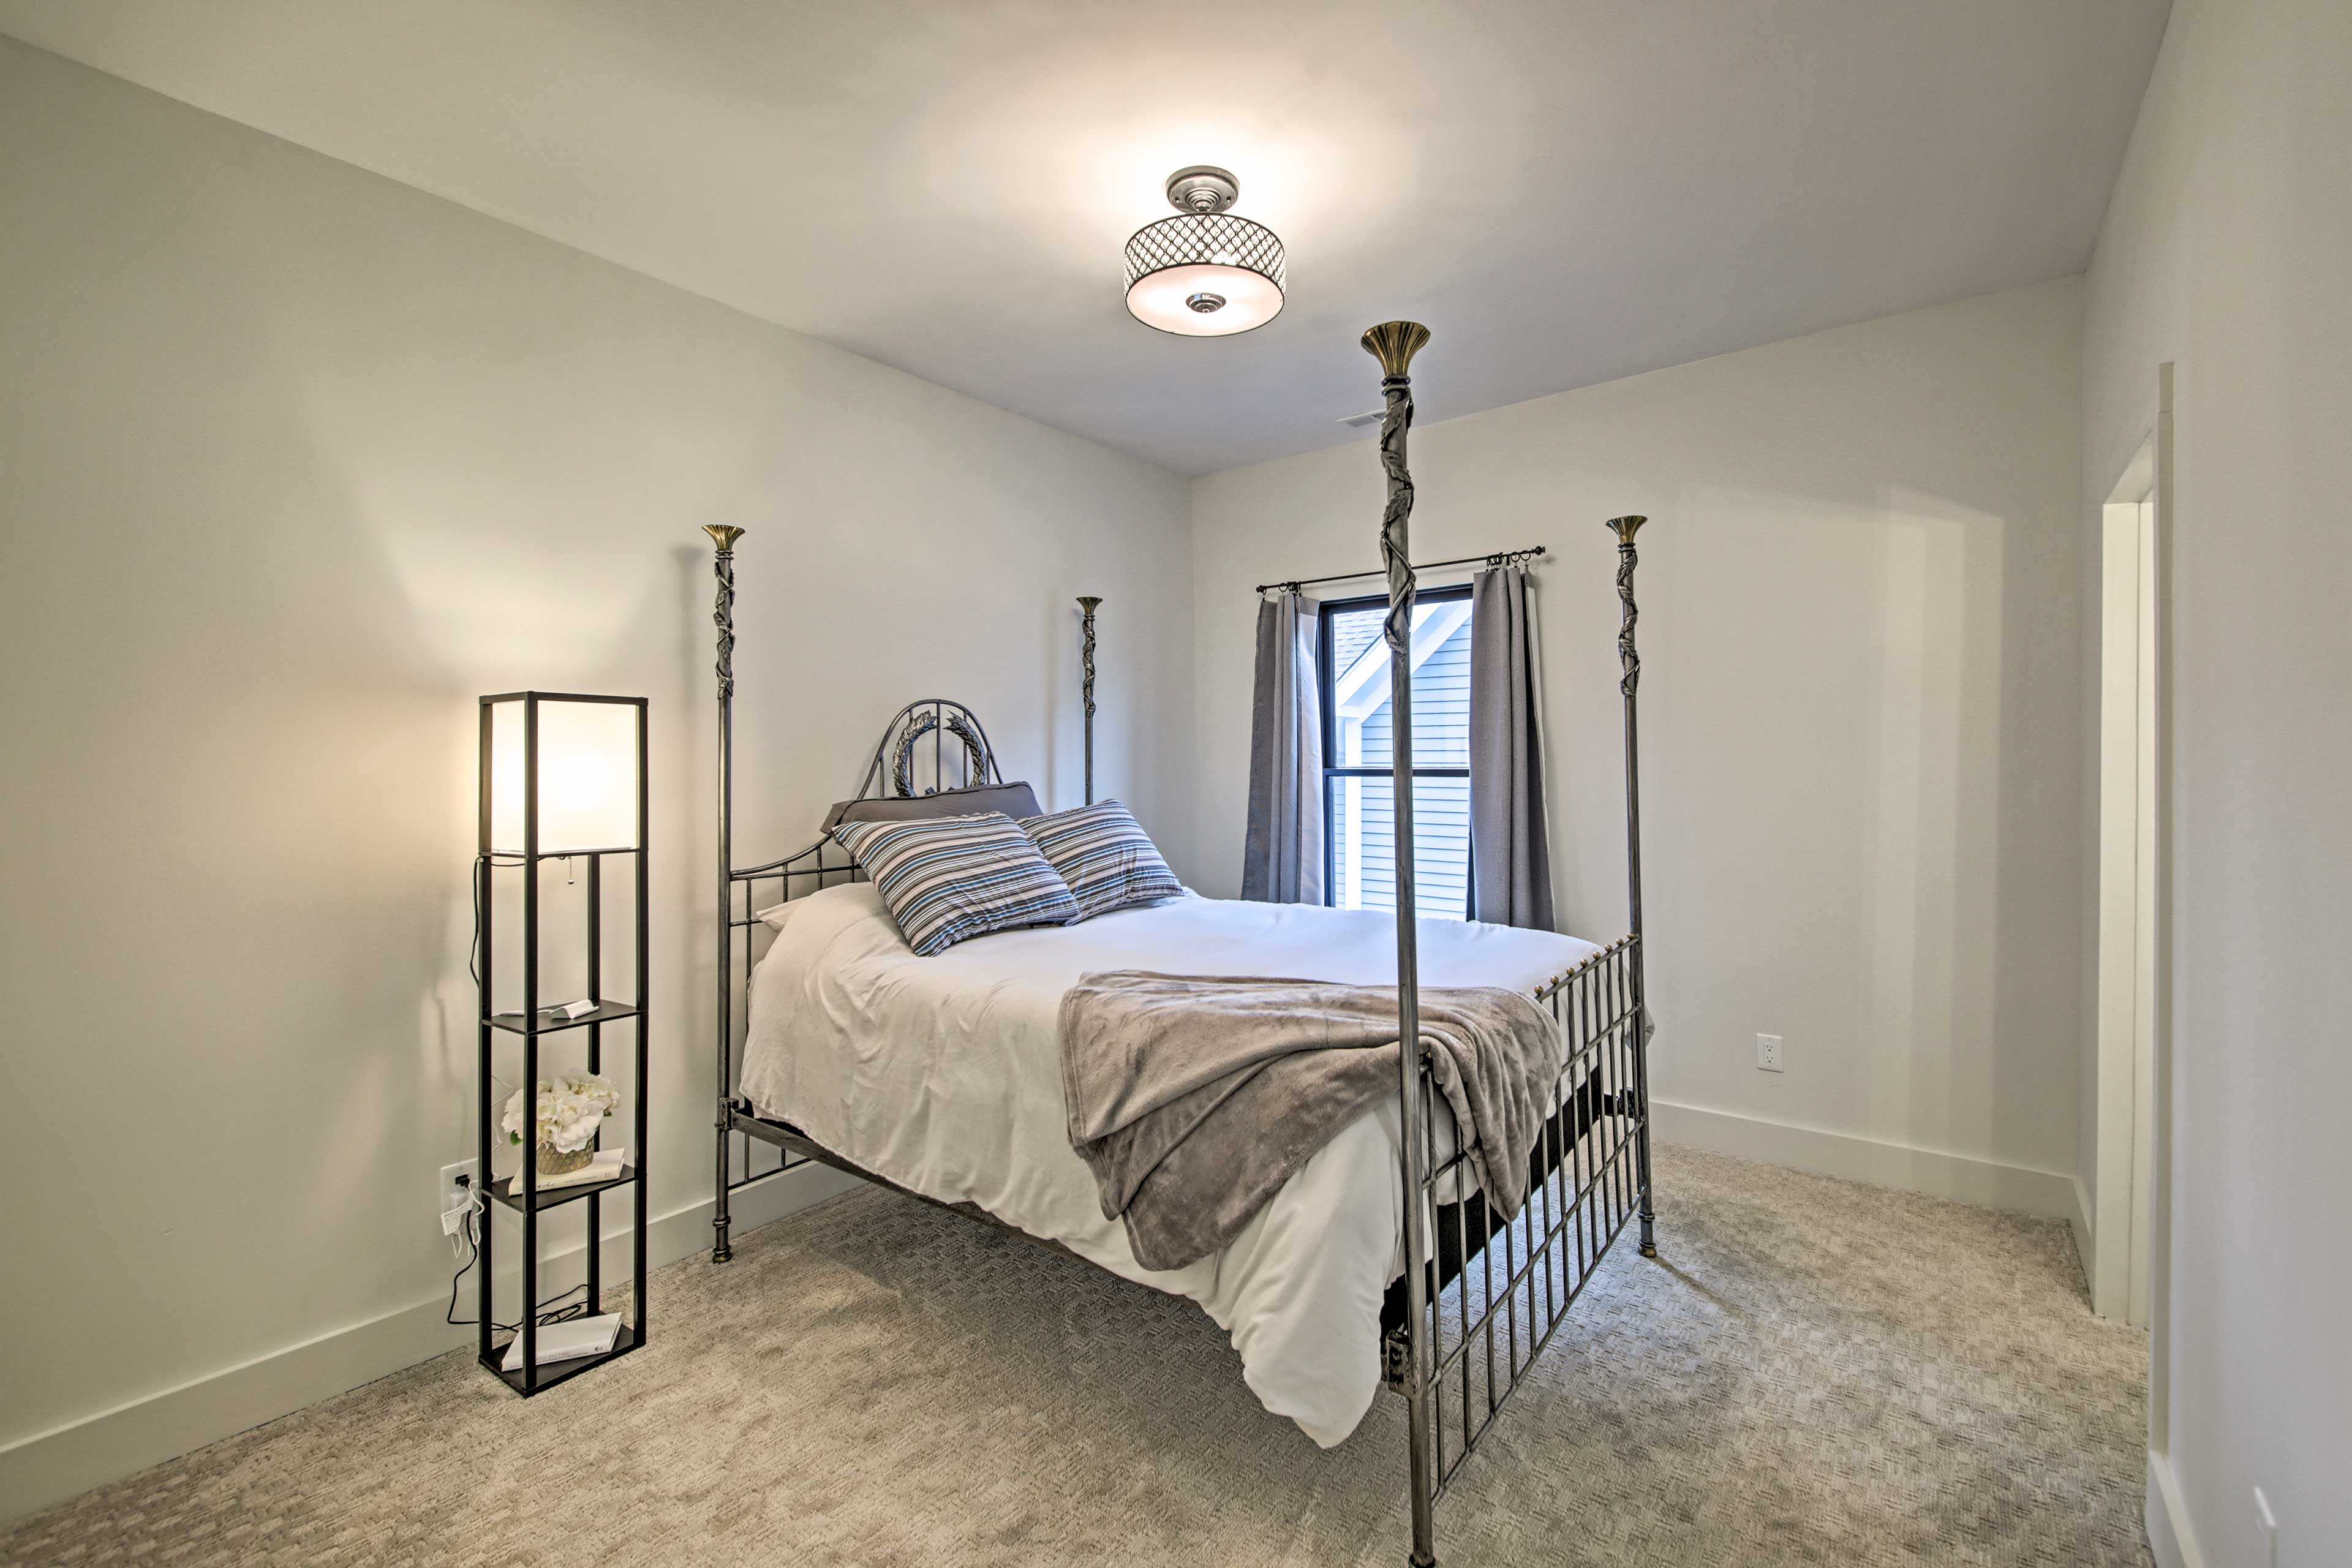 The third bedroom features a queen bed.